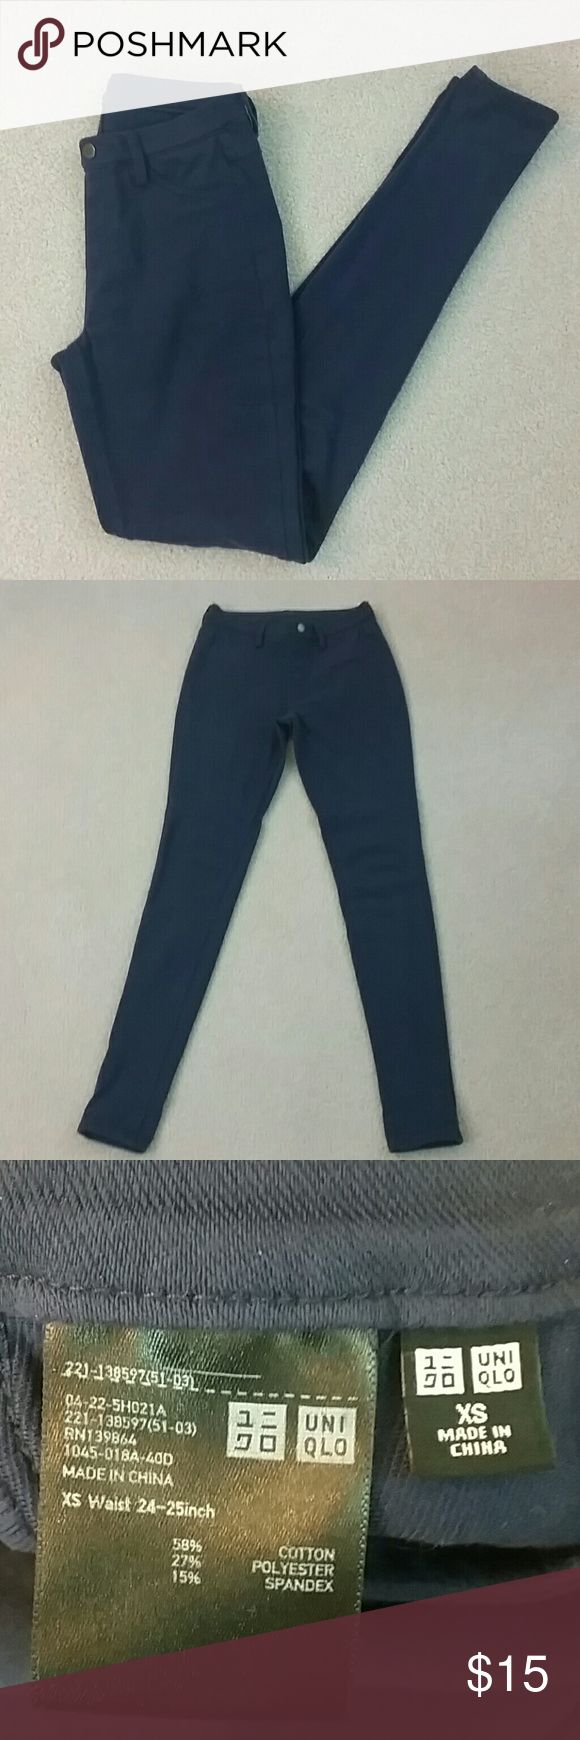 Uniqlo leggings pants Uniqlo dark blue leggings pants. Super comfortable. UNIQLO Pants Leggings